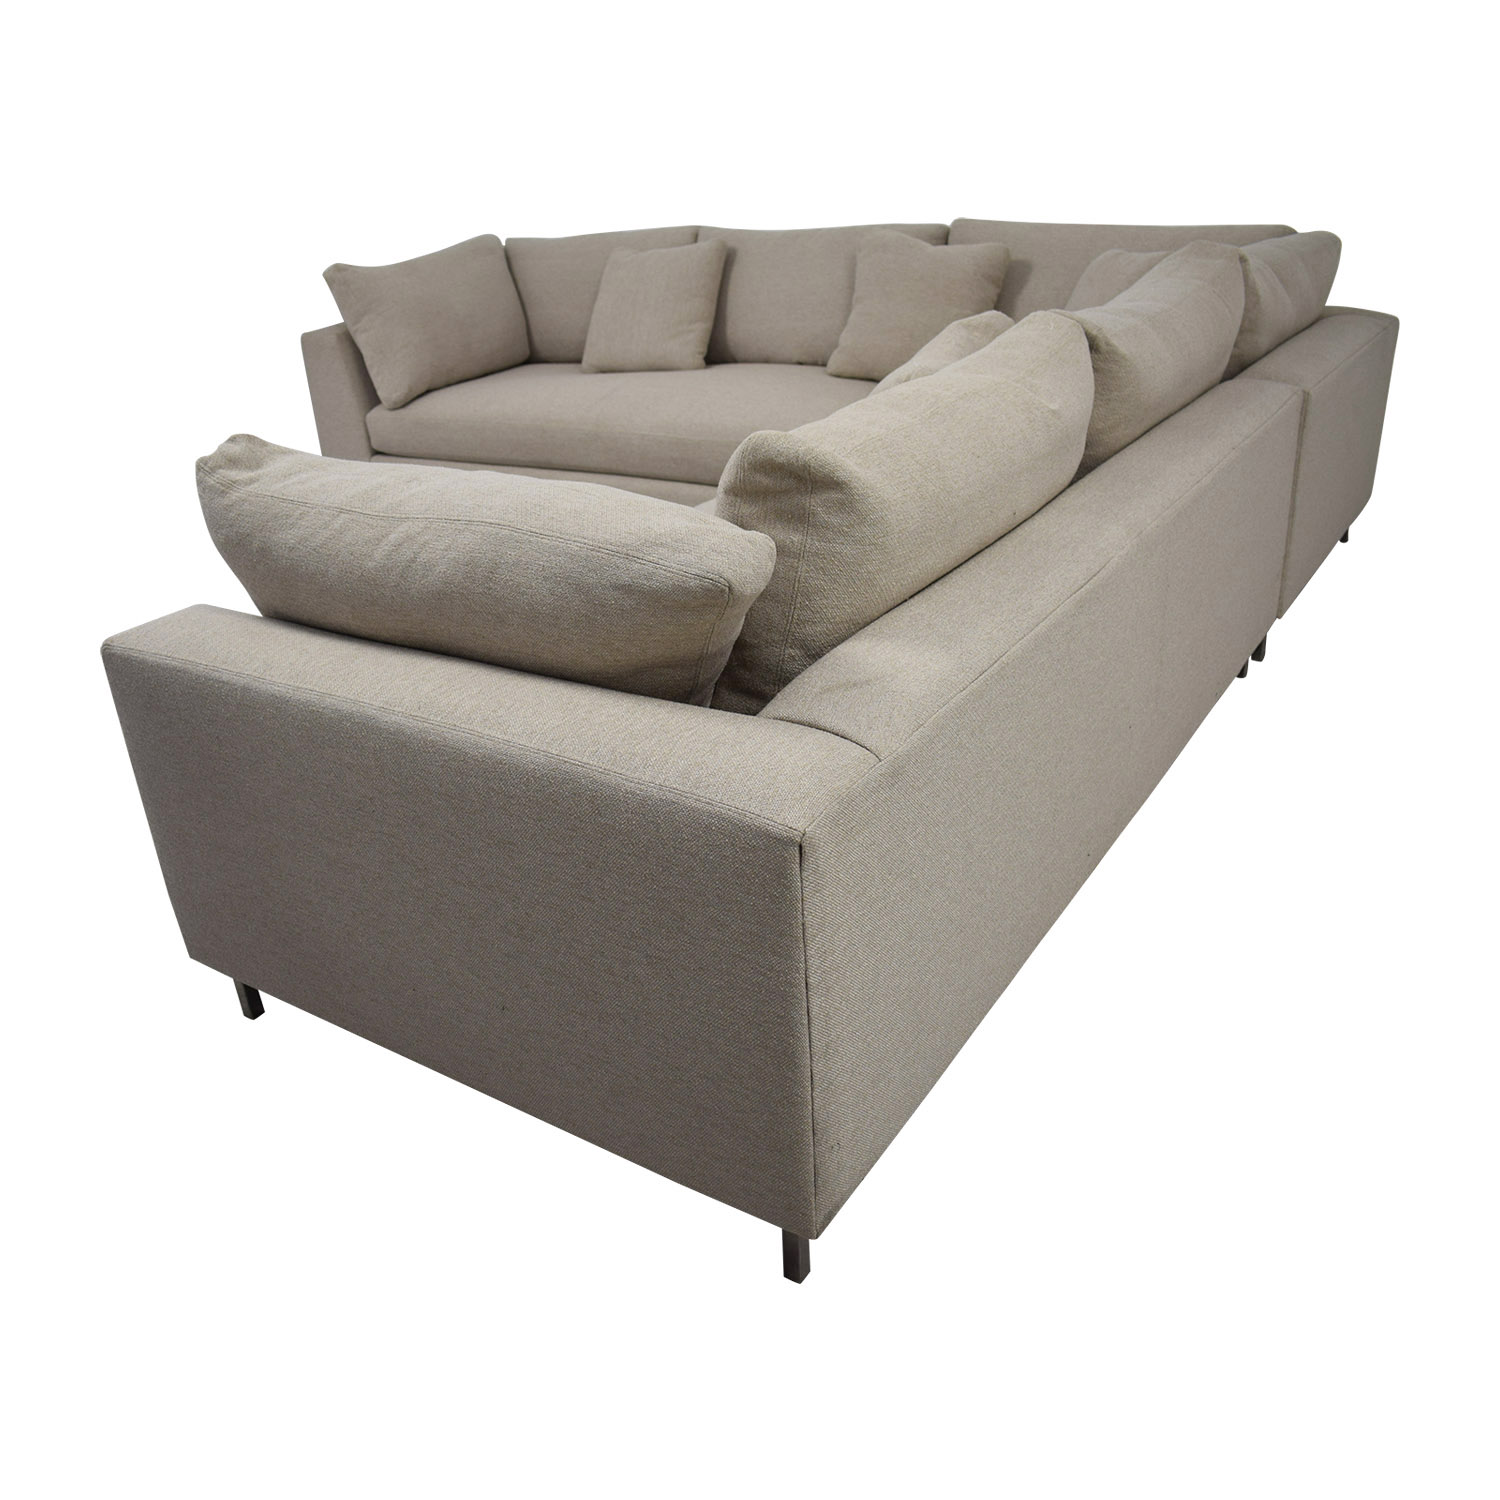 Room Board Beige L Shaped Sectional